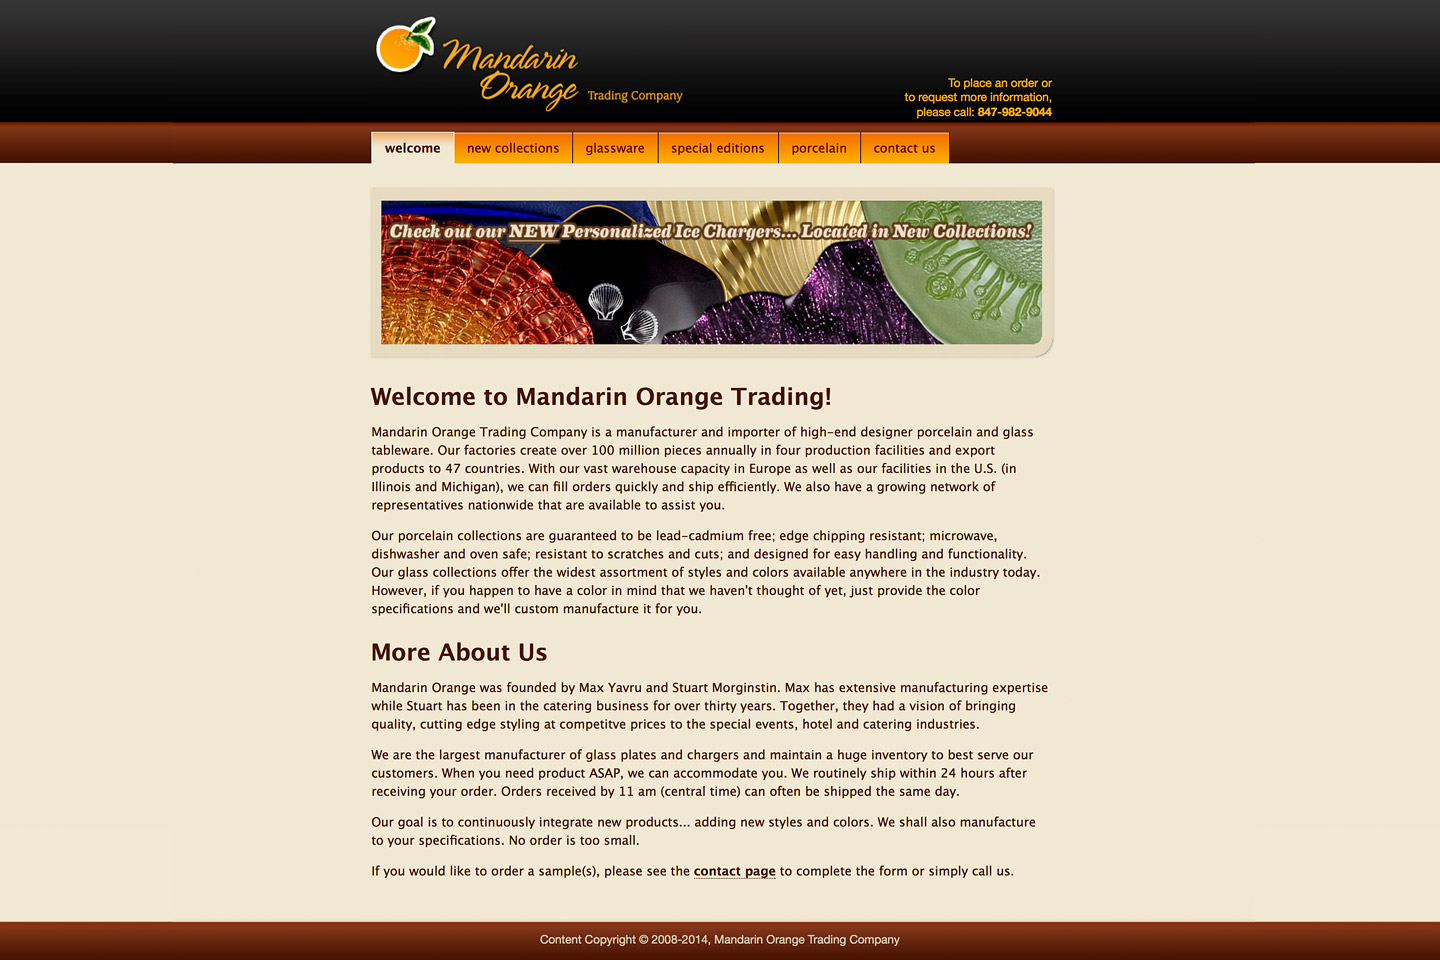 a screen capture of the mandarin orange trading company homepage, featuring an montage of various colorful charger plates